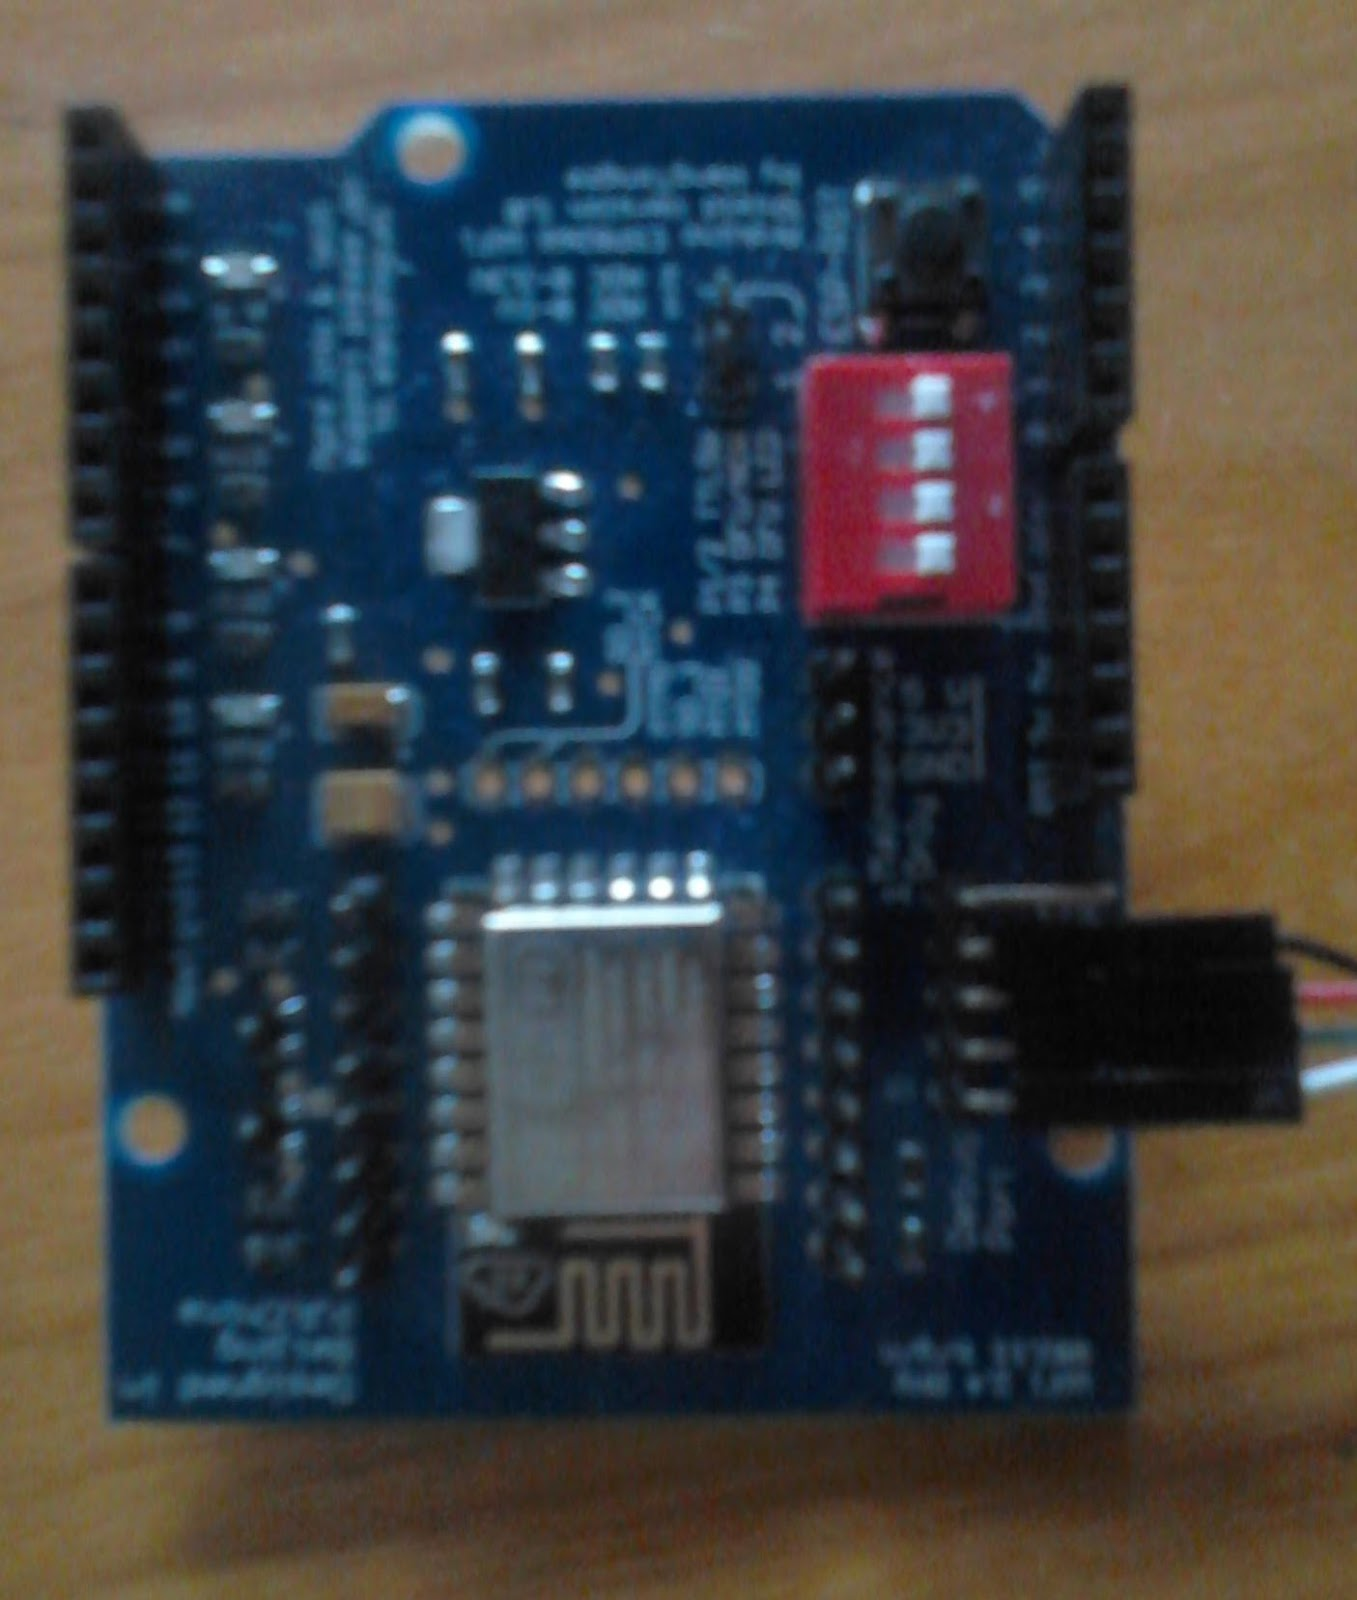 arduino uno schematic html with Esp8266 Wangtongze Arduino Uno Shield on Rf Module With Arduino And 89c51 Microcontroller in addition Connect Arduino By Keypad And Lcd furthermore Weeks6 11 in addition Index likewise Esp8266 Wangtongze Arduino Uno Shield.